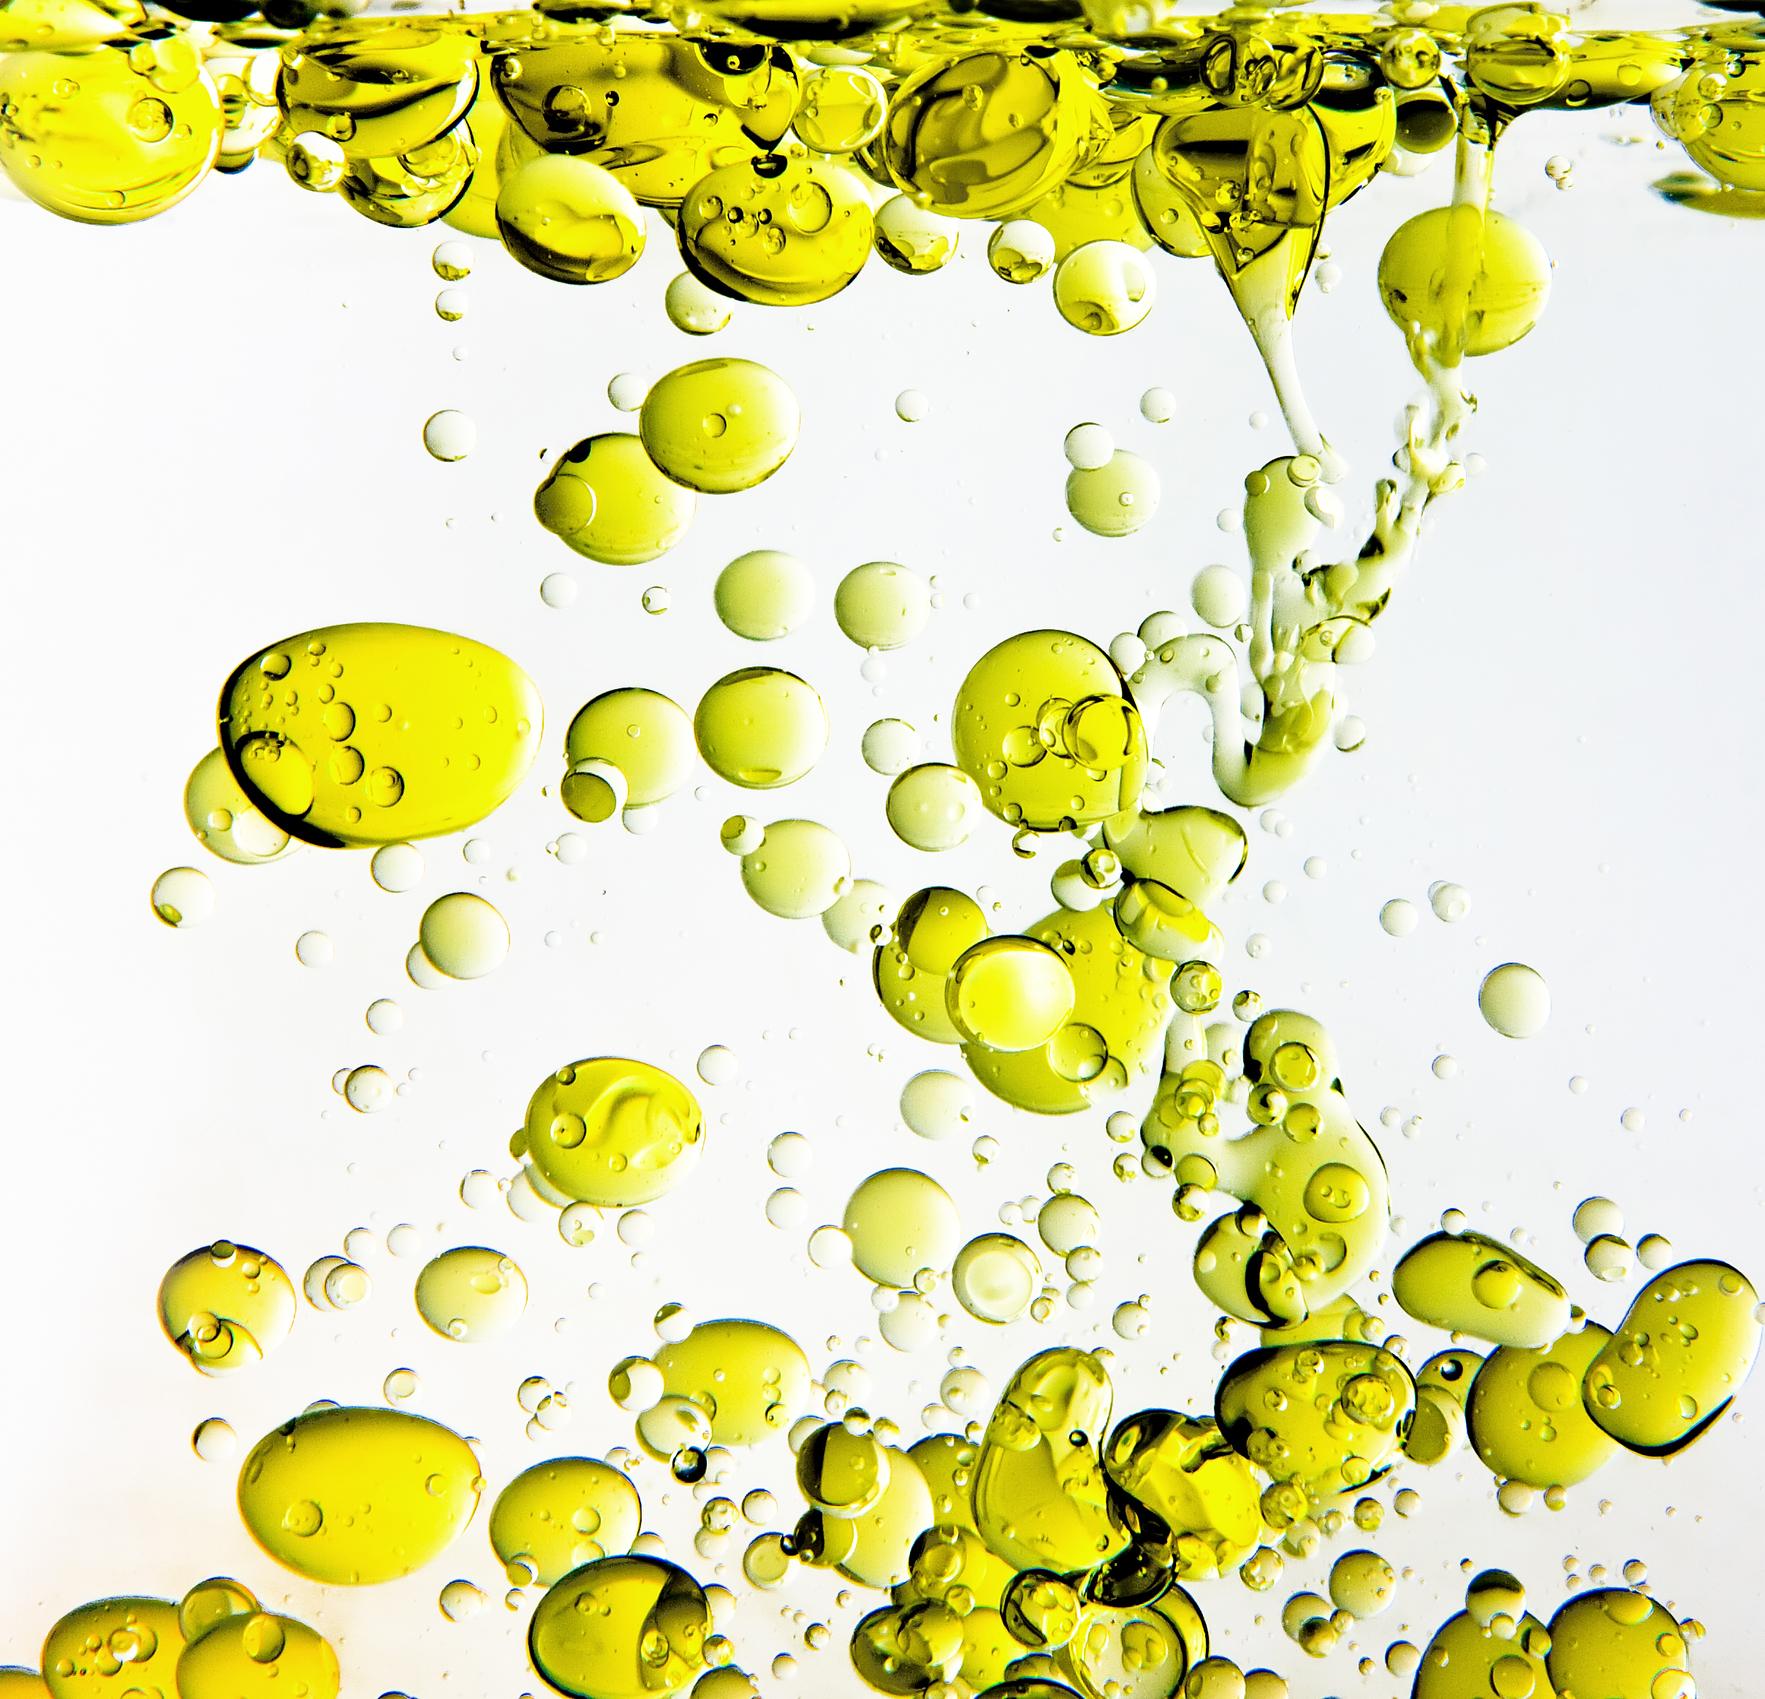 What are Emulsifiers and Solubilizers?